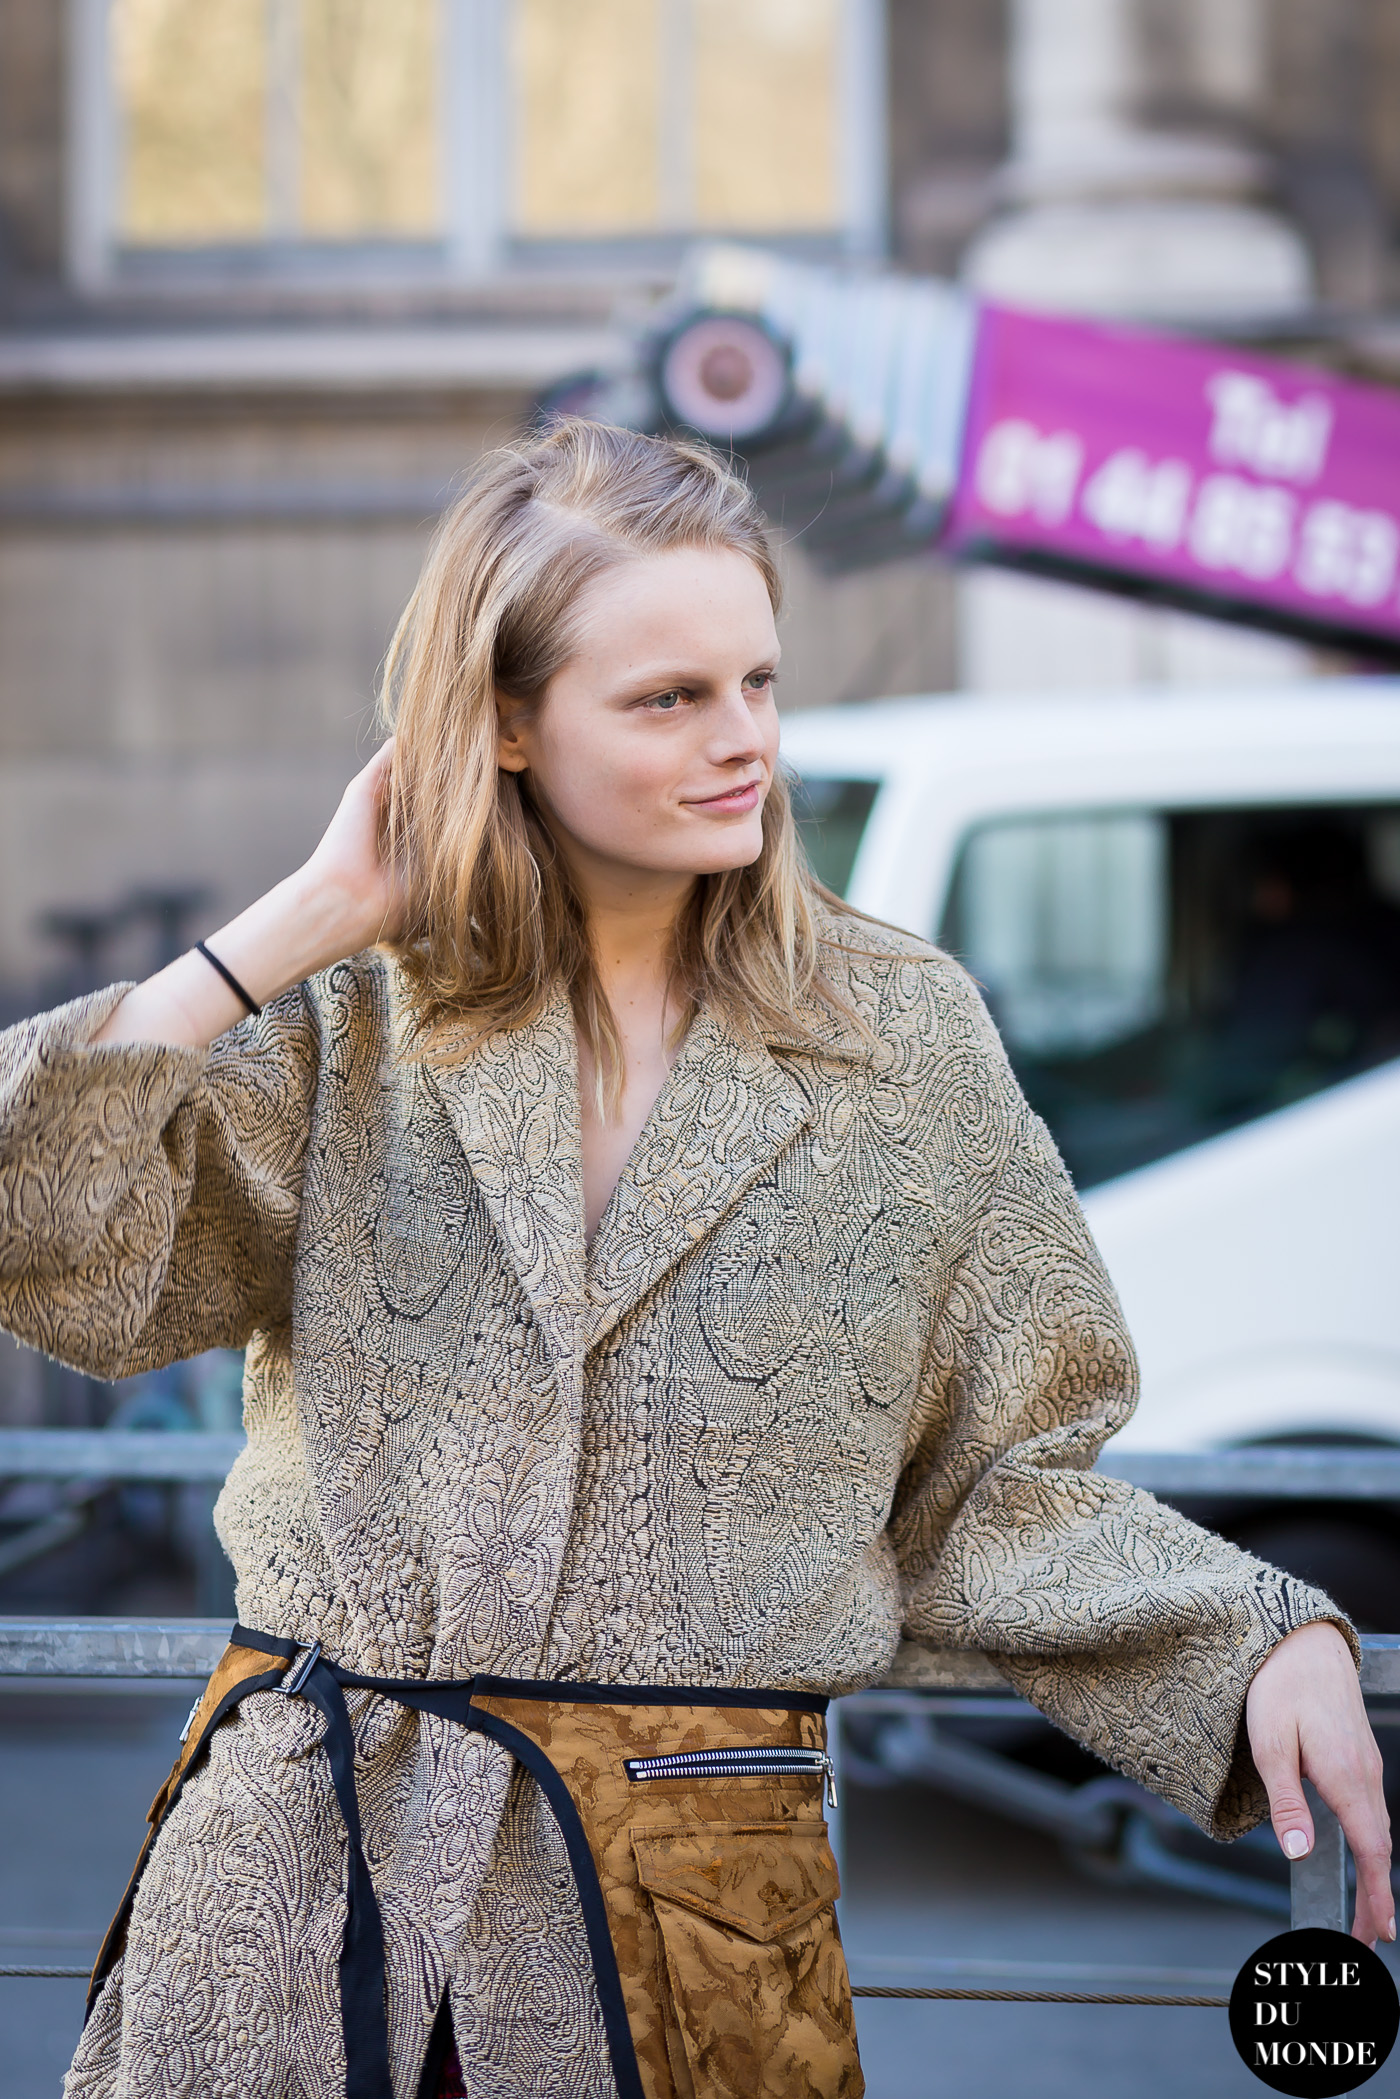 Hanne Gaby Odiele Street Style Street Fashion Streetsnaps by STYLEDUMONDE Street Style Fashion Blog